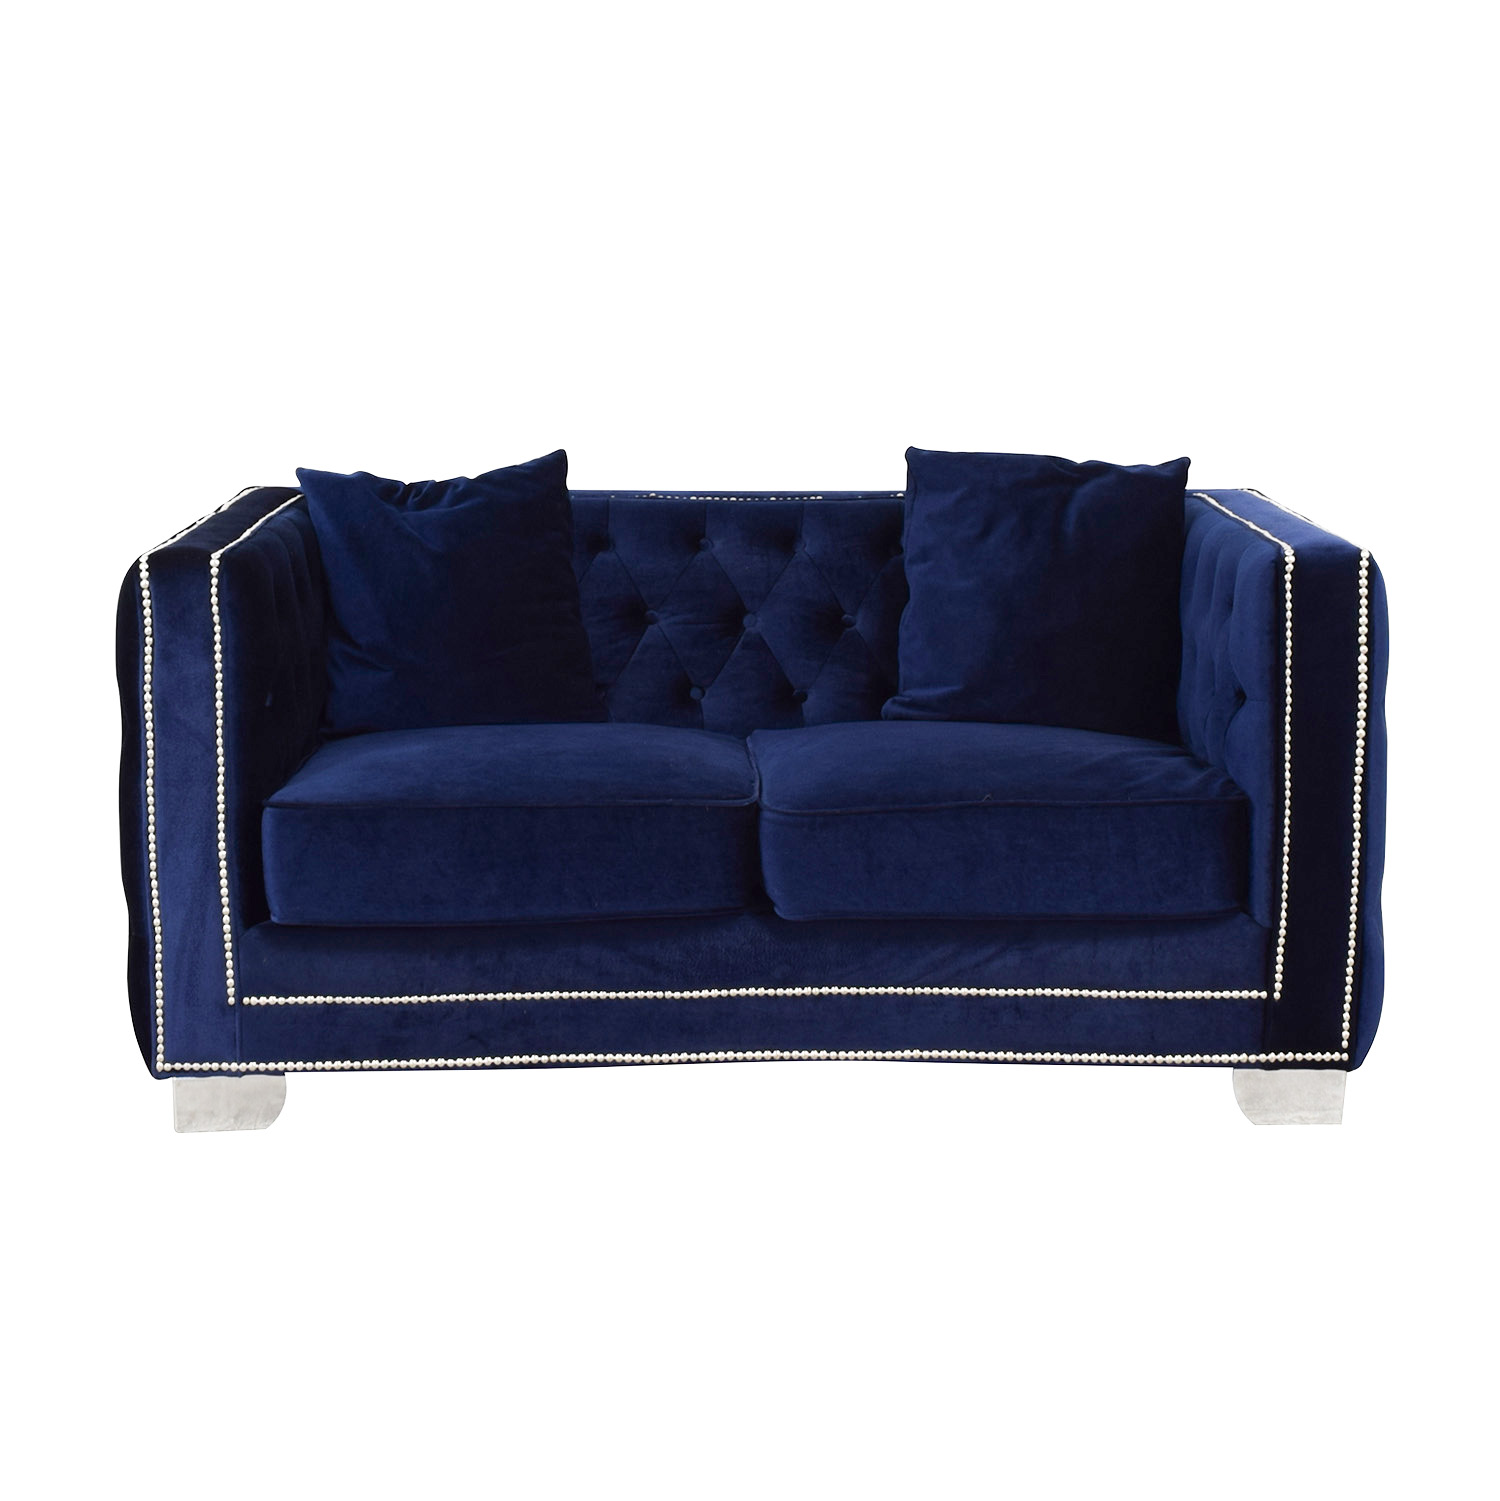 Ashley Furniture Ashley Furniture Blue Tufted Nailhead Two-Cushion Loveseat blue